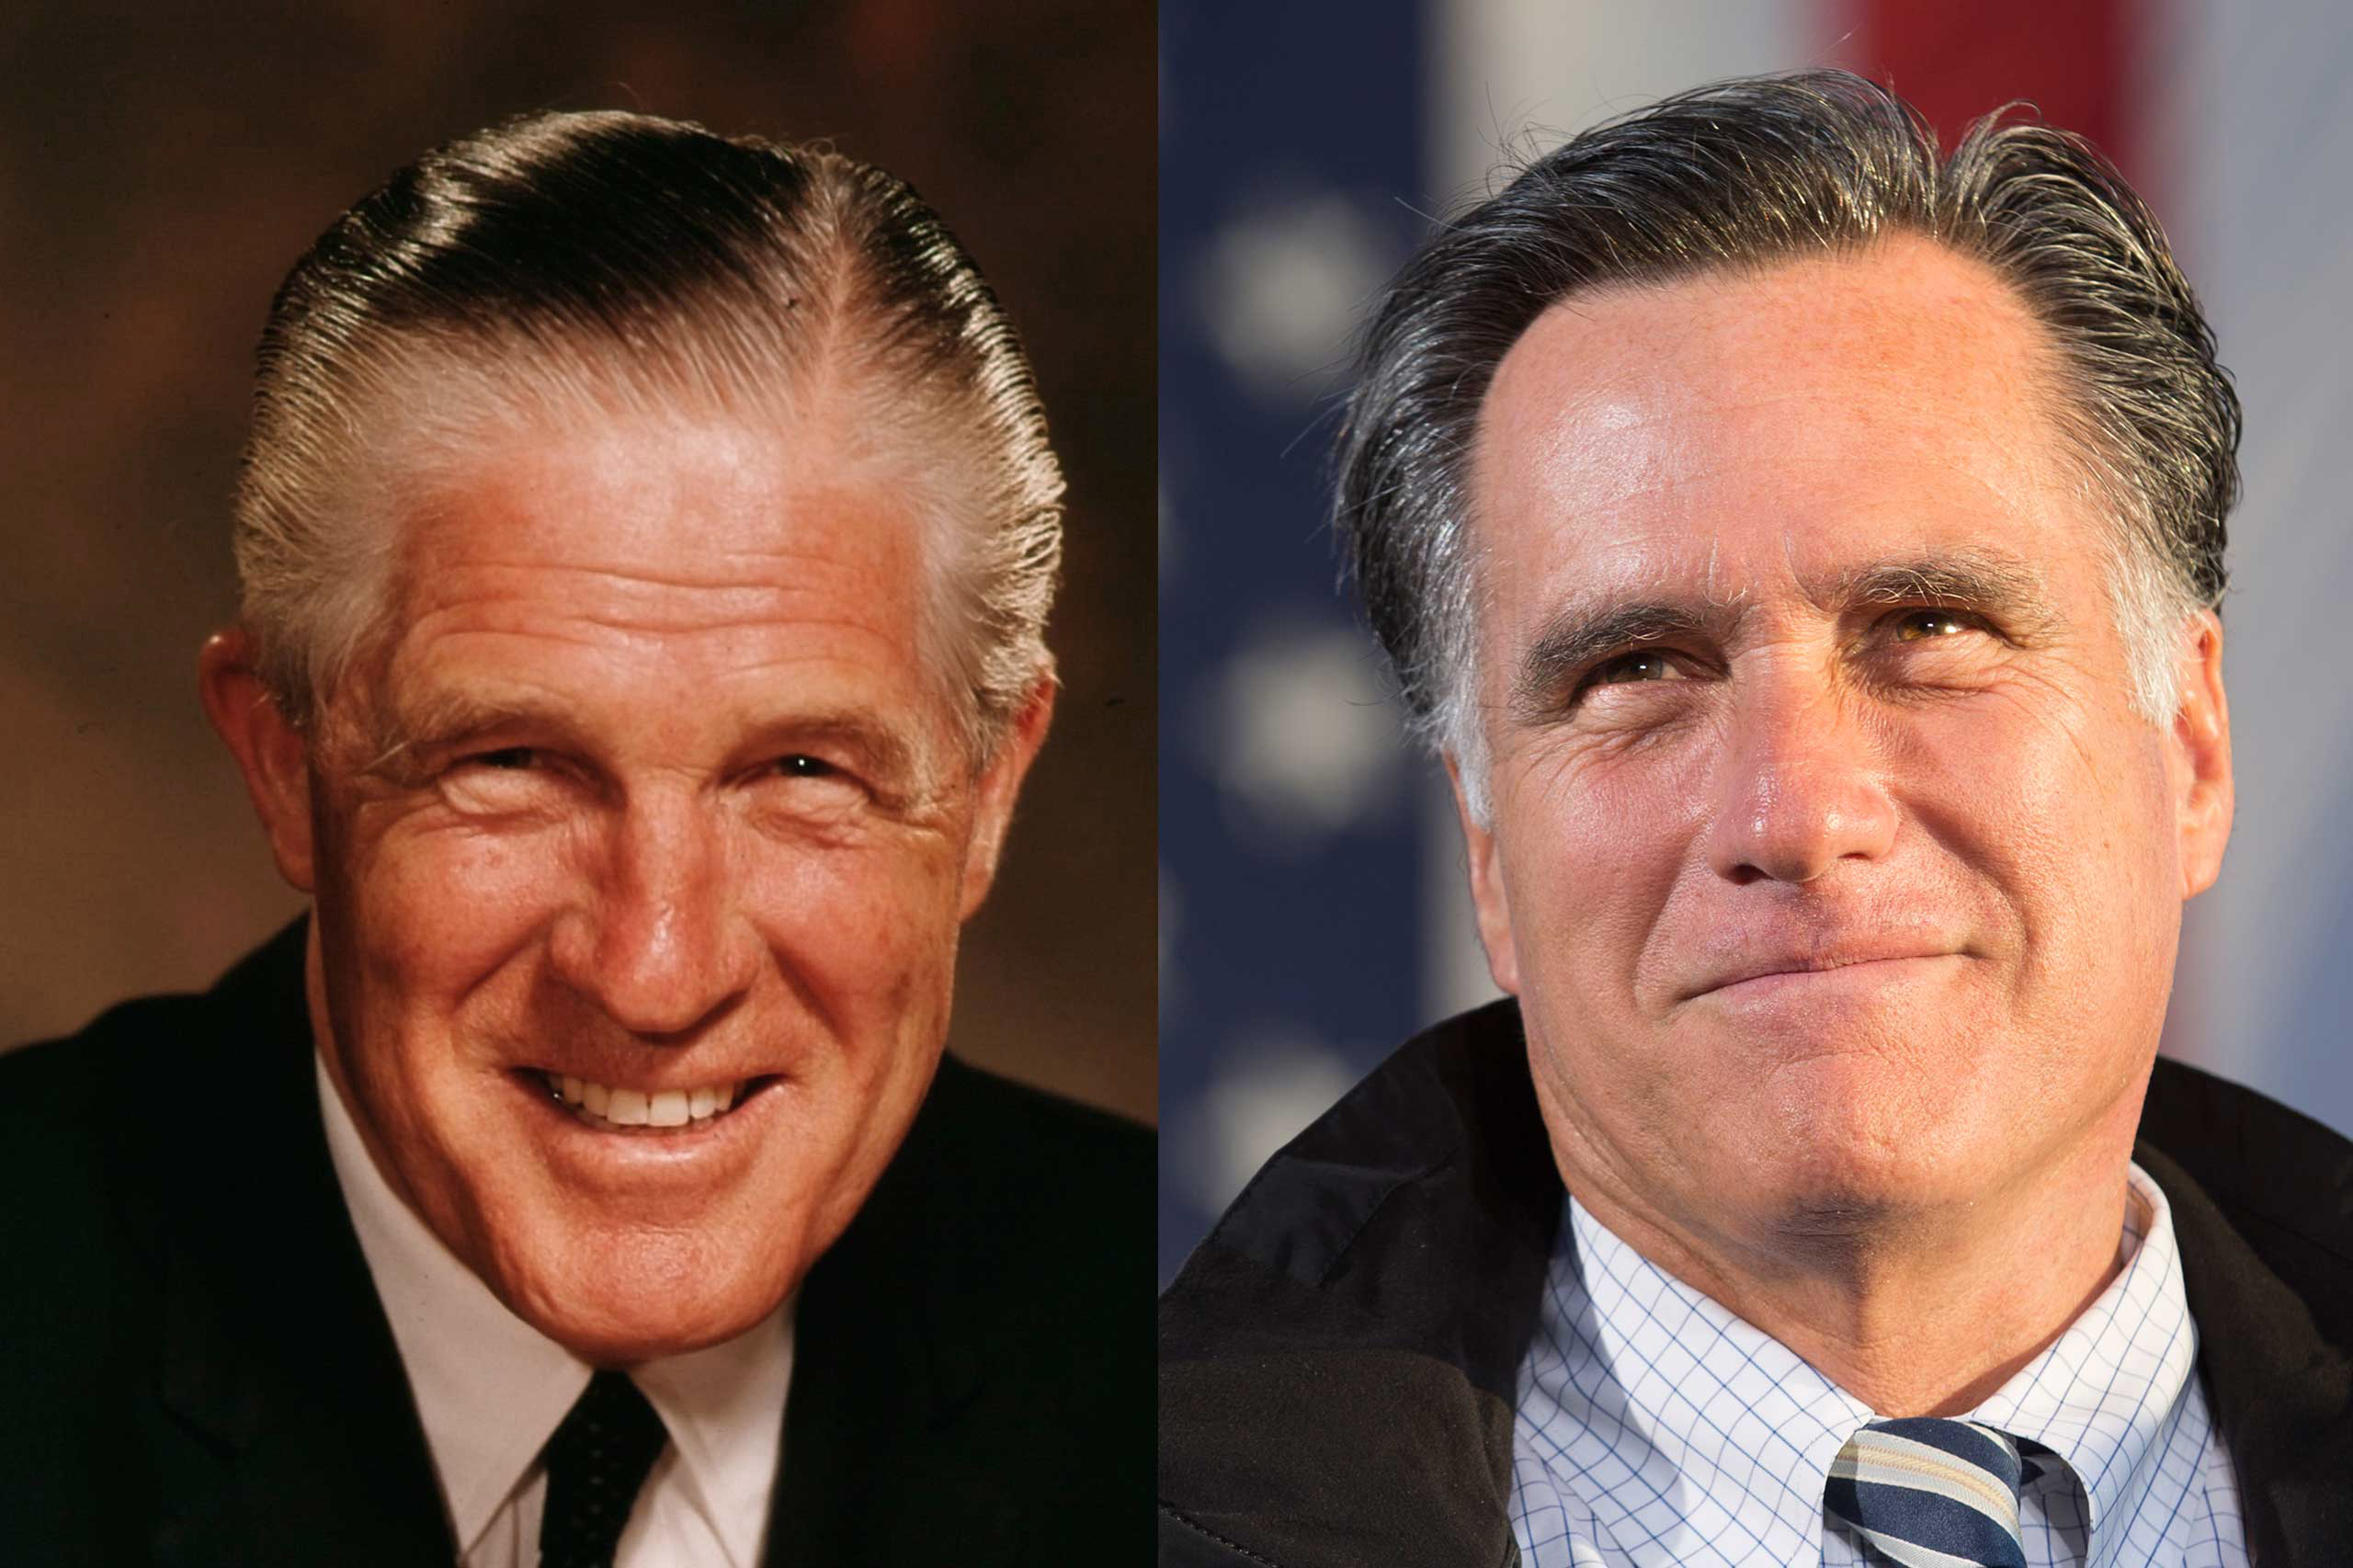 Both George Romney and his son Mitt rose to national political prominence but neither held the top job. The elder Romney, who served as Governor of Michigan, ran unsuccessfully for the GOP nomination in 1968. Mitt Romney served as Governor of Massachusetts and secured the Republican presidential nomination in 2012. He was defeated in the general election.